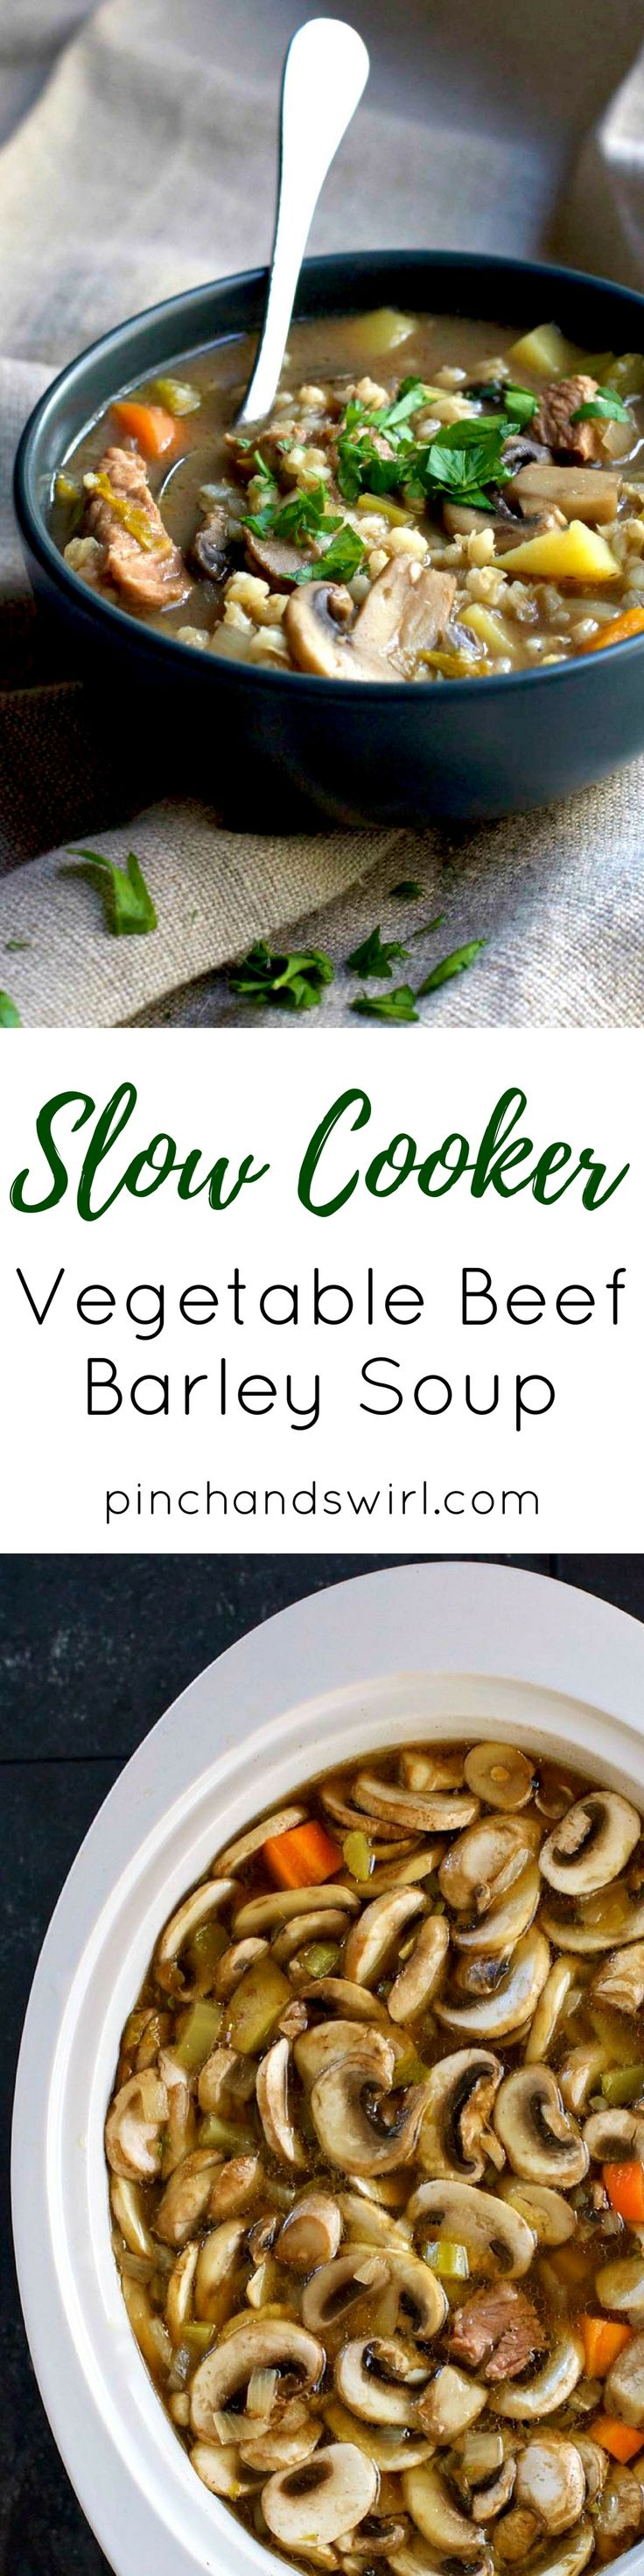 best wow food group board images on pinterest amazing